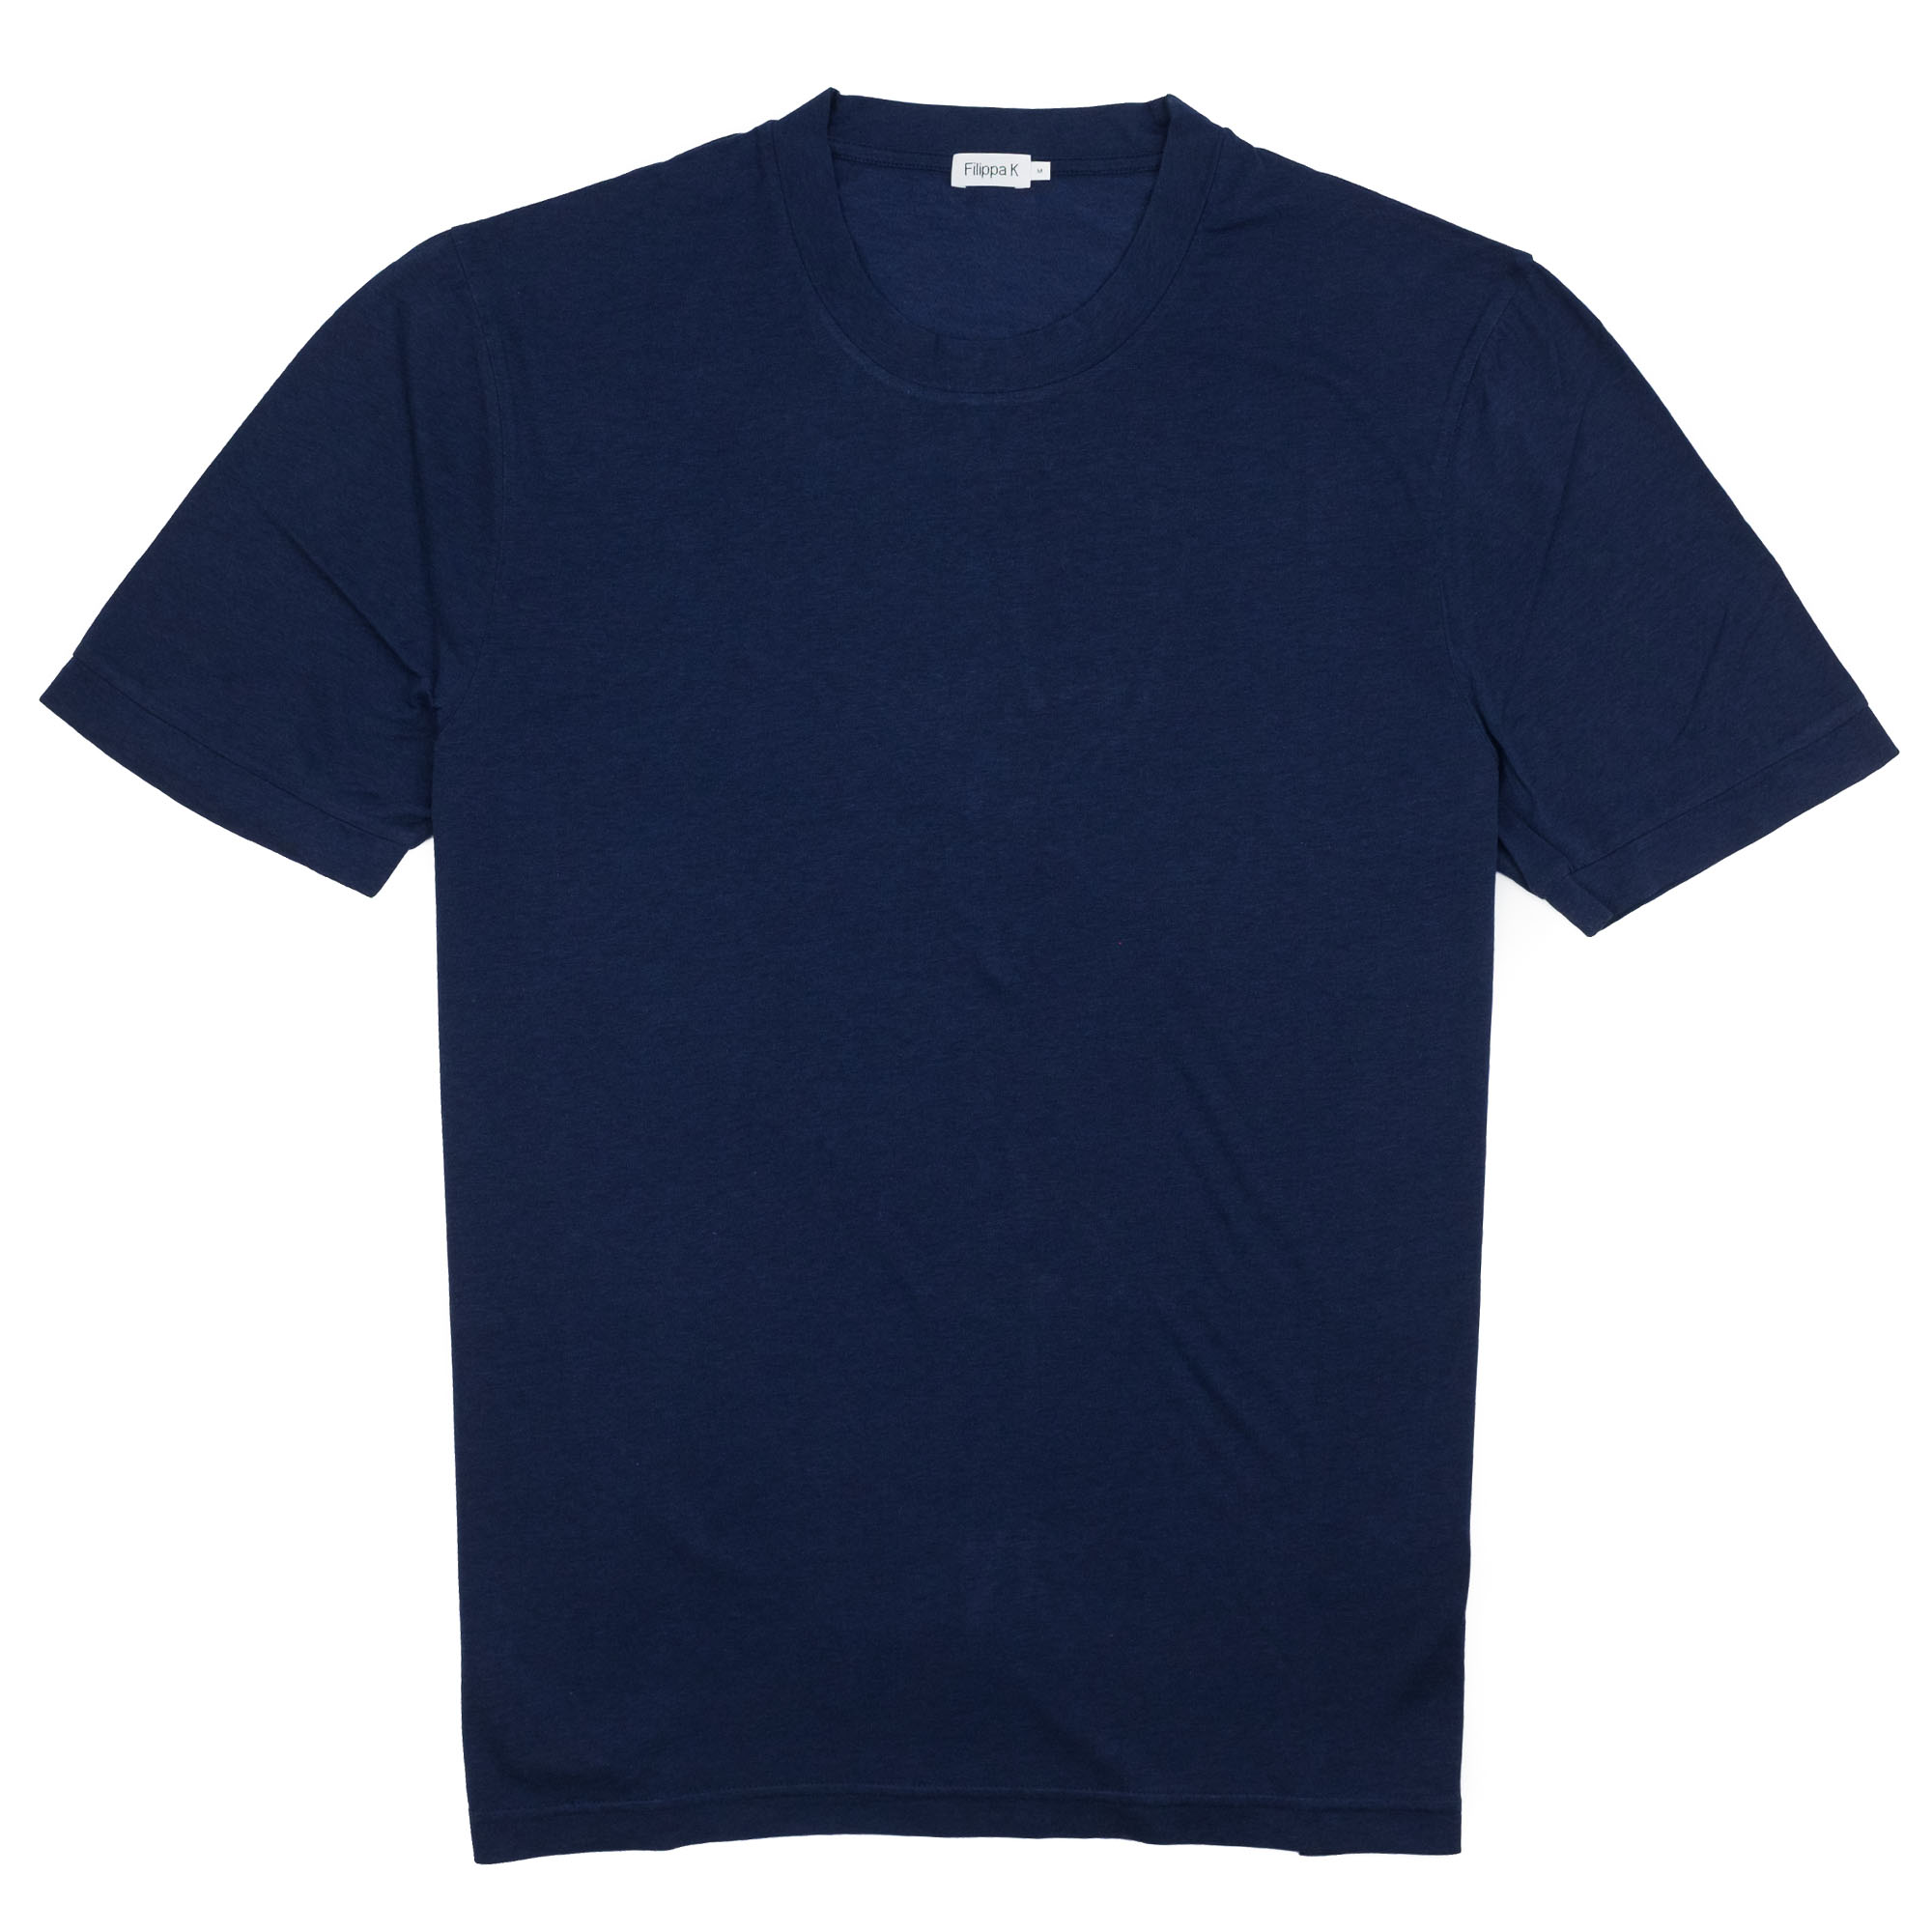 Filippa K Tencel Cotton Tee - Deepwater